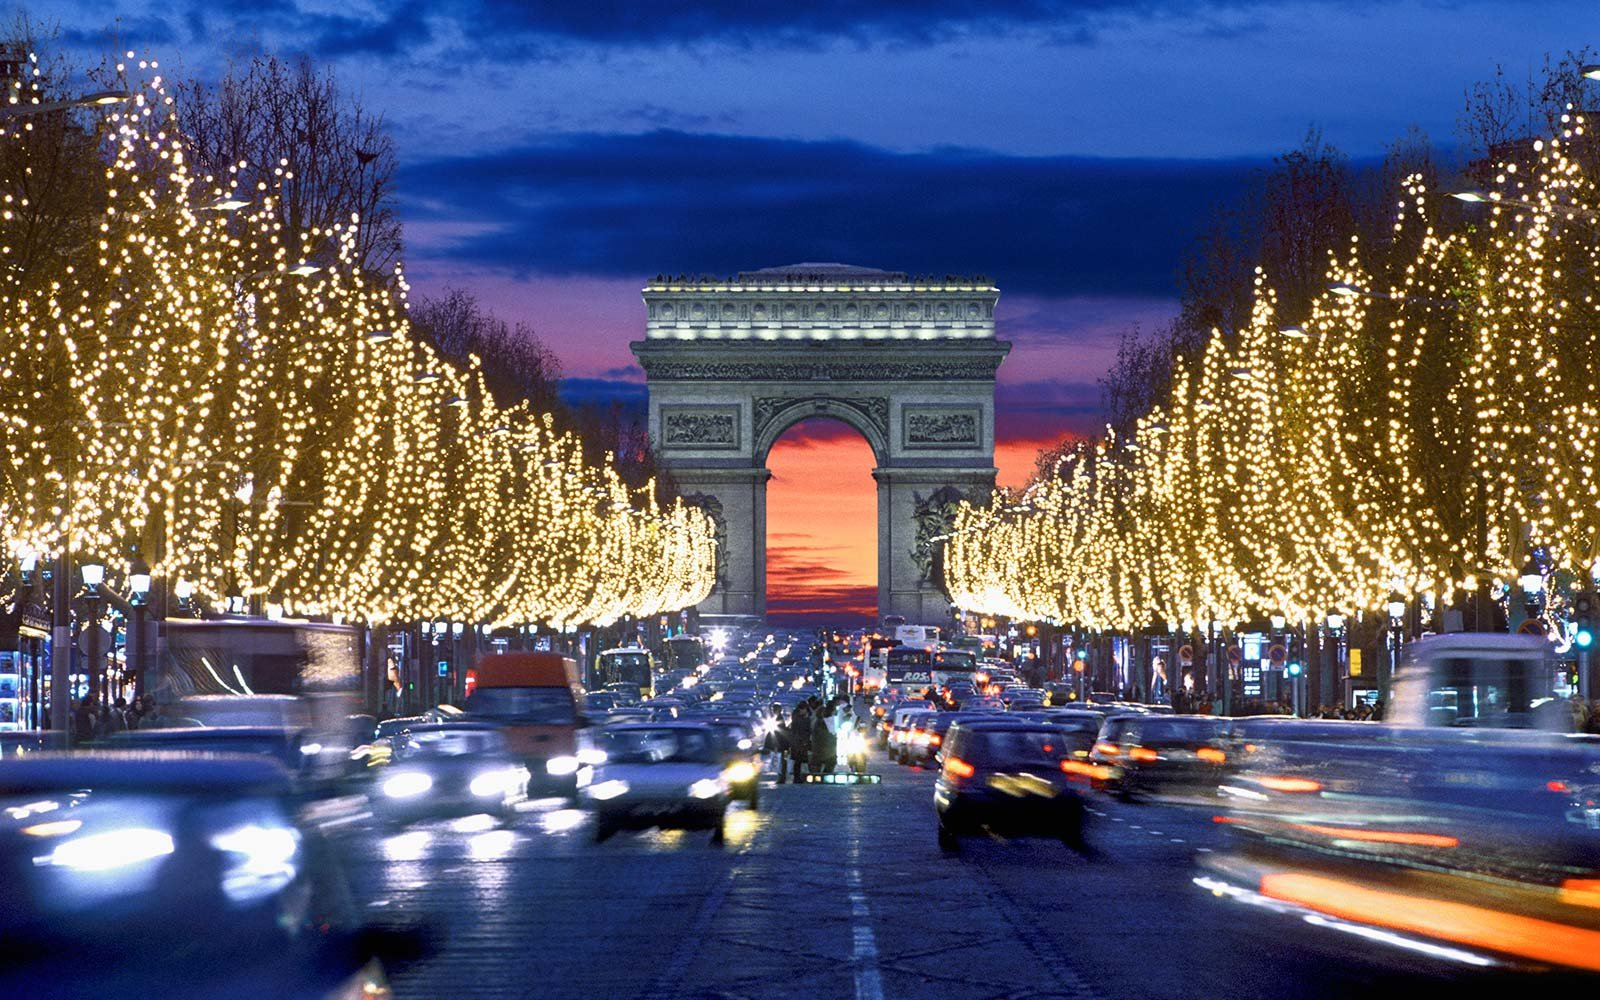 Champs Elysees Christmas Lights Holiday Paris France